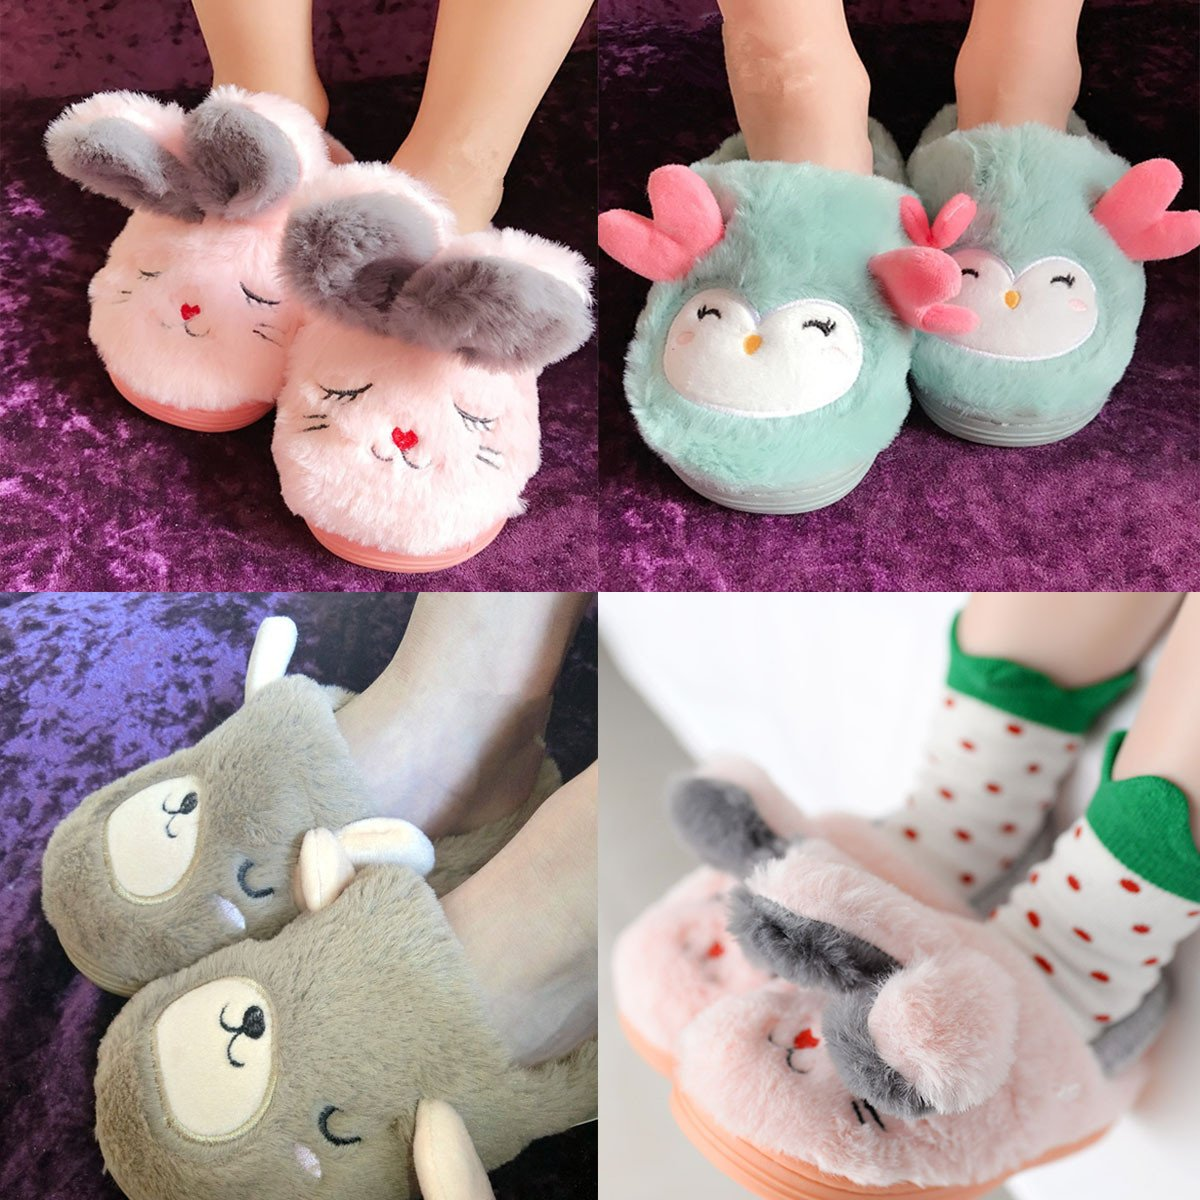 Toddler Girls Boys Slipper Shoes For Kids Cute Cartoon Warm Winter Non-Slip Bedroom Indoor House Slipper Comfort Home Shoes